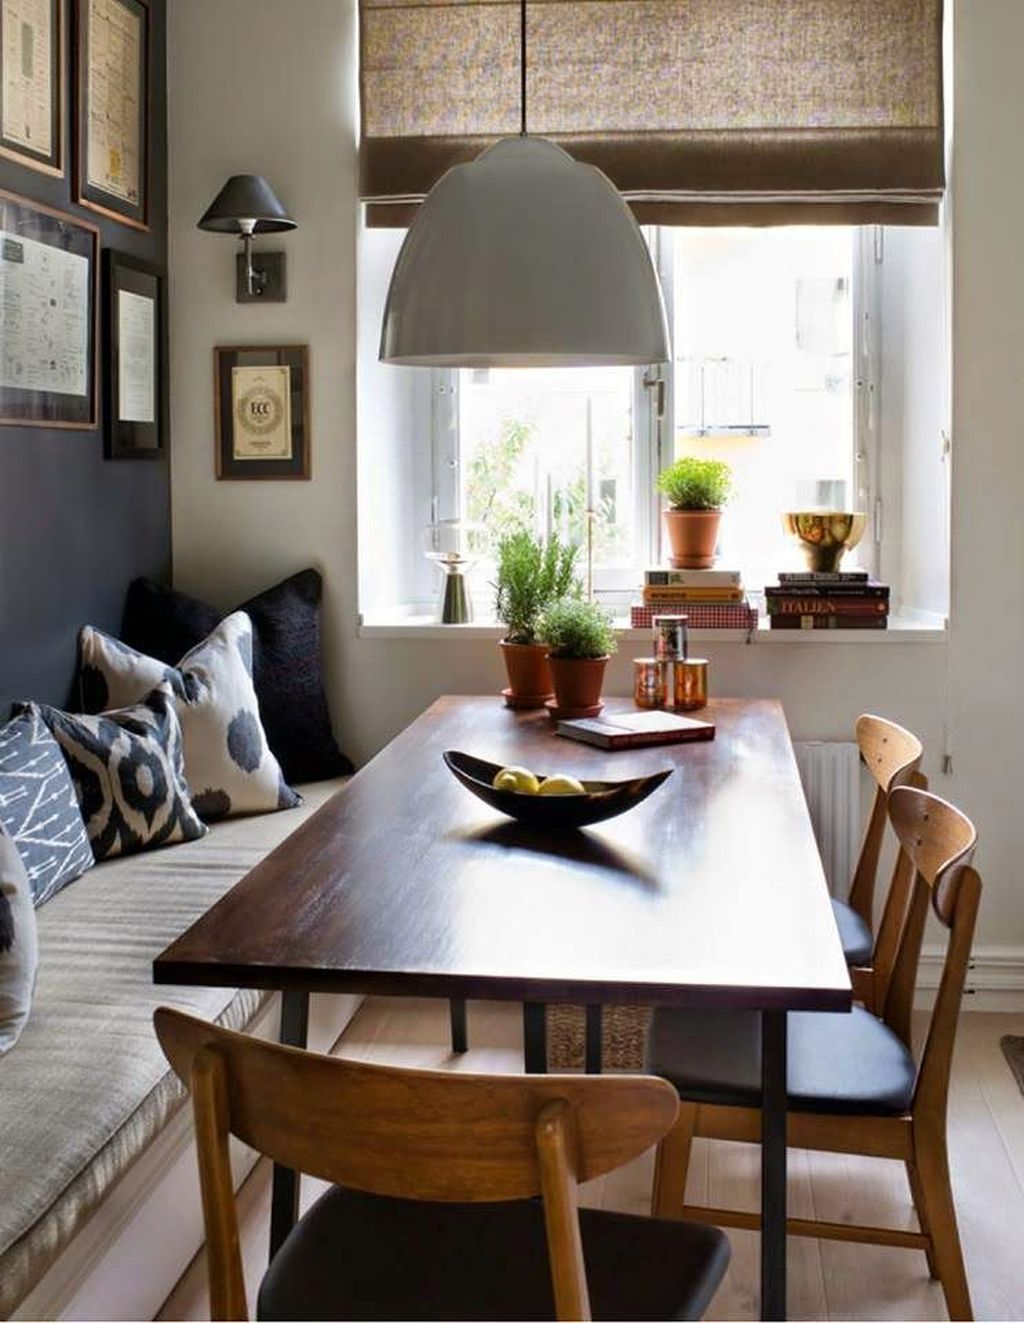 Superb 44 Awesome Banquette Seating Ideas For Your Kitchen   LuvlyDecor